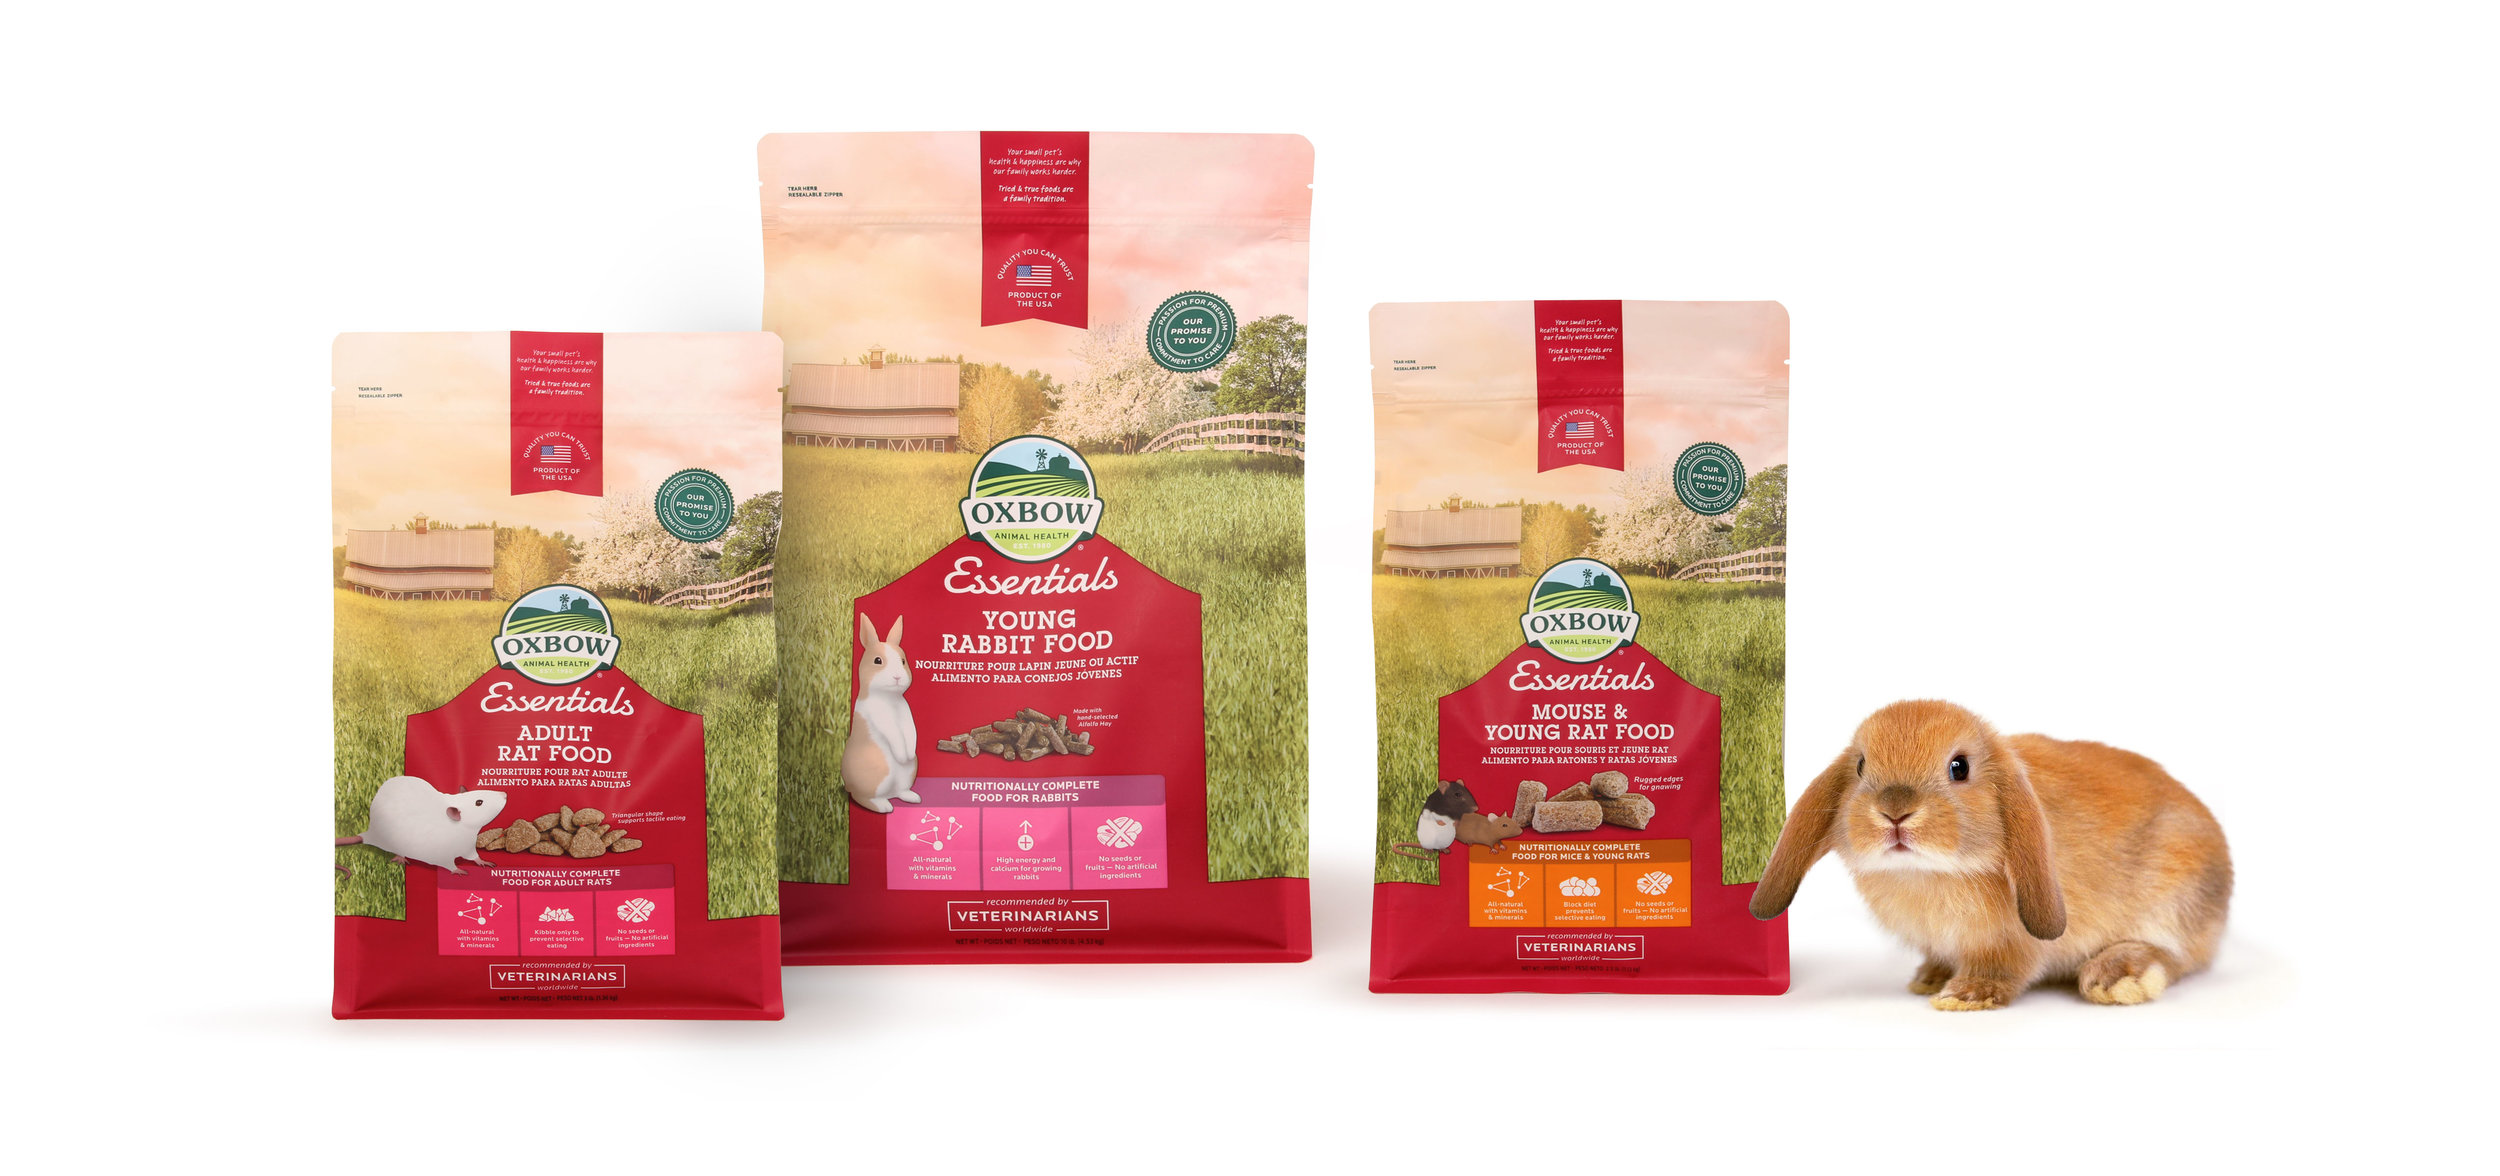 Flexible Pack_Pet food_Pouches example_Oxbow